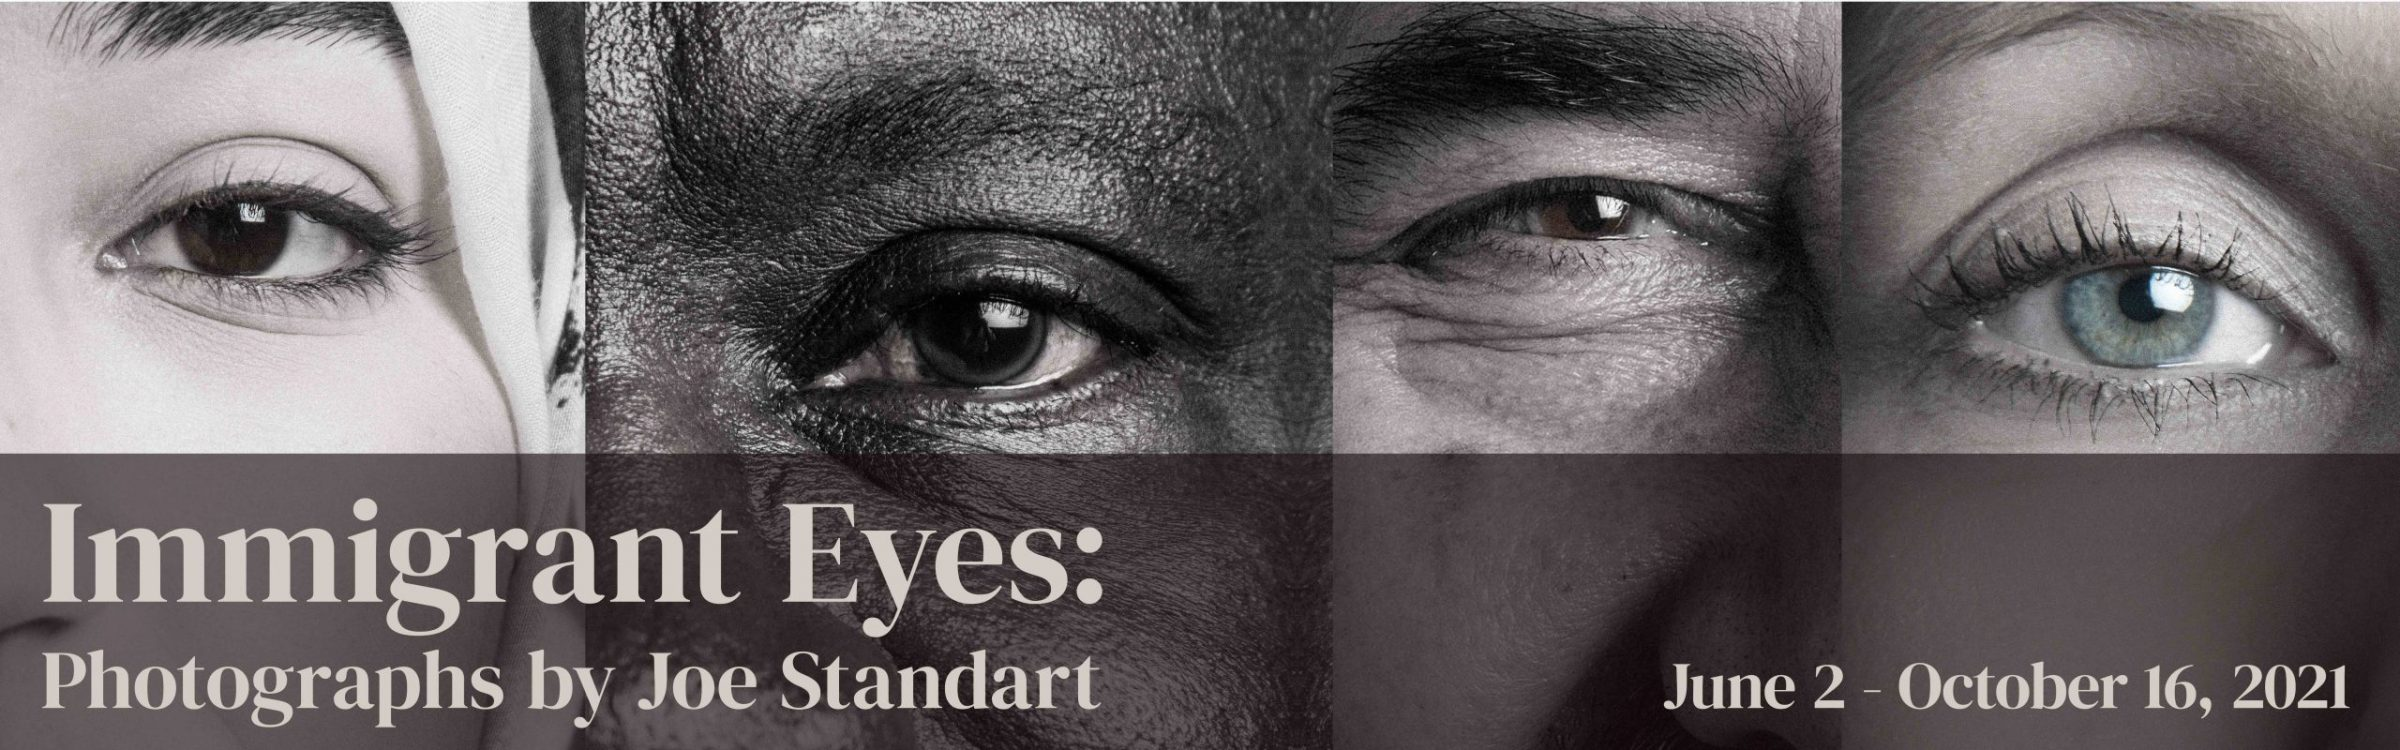 Immigrant Eyes Exhibition banner